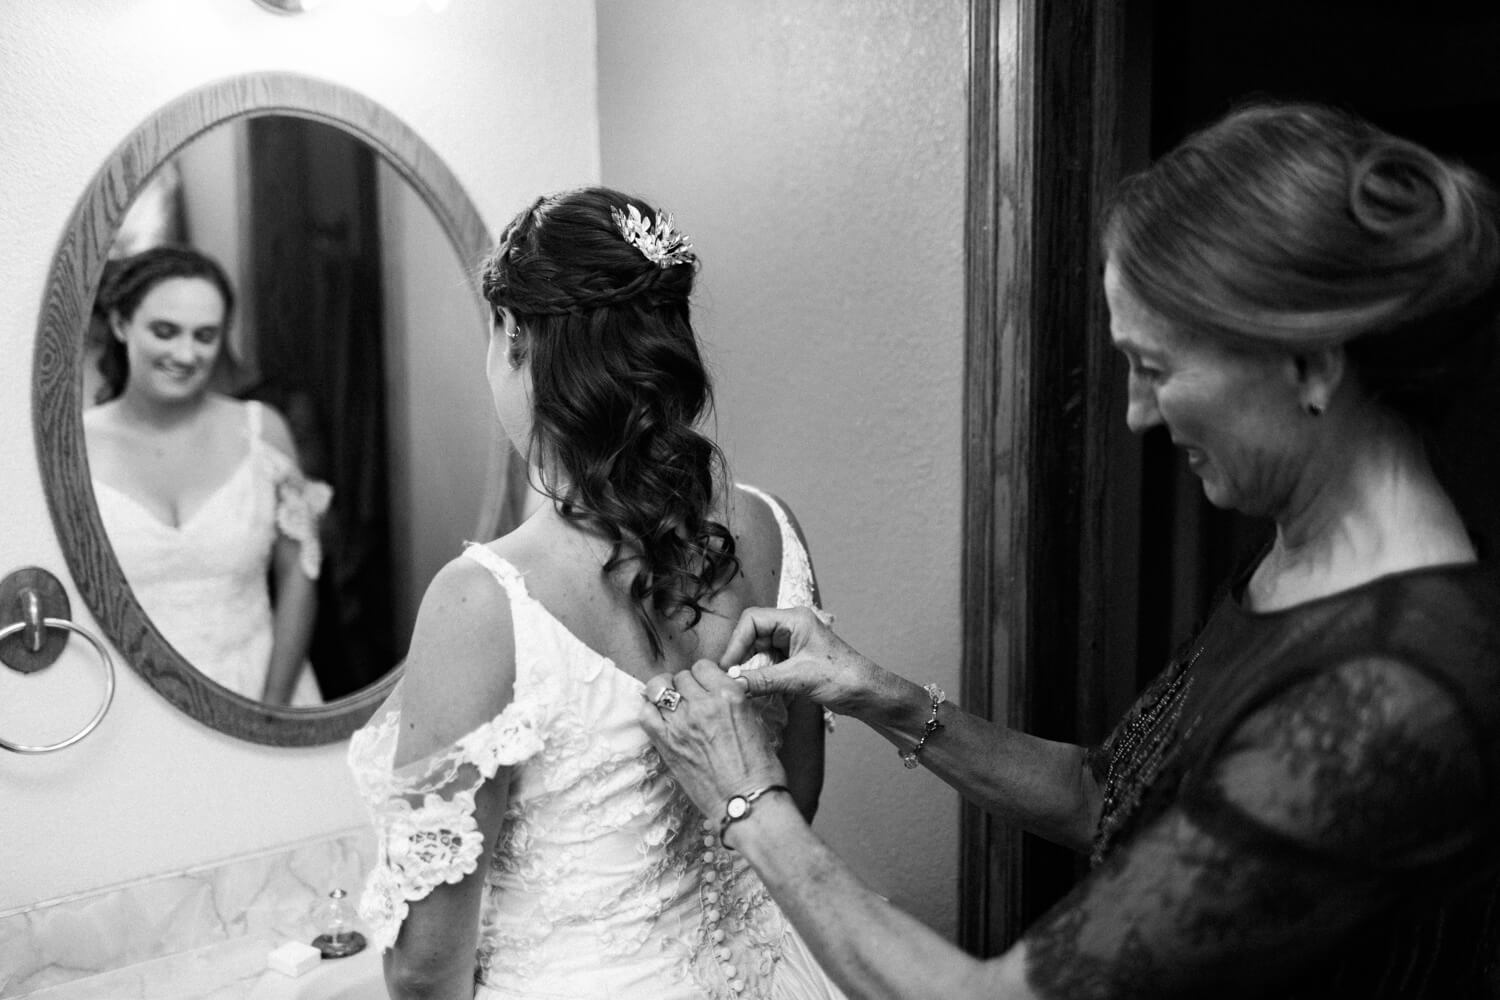 mother of the bride buttoning dress as bride looks into mirror